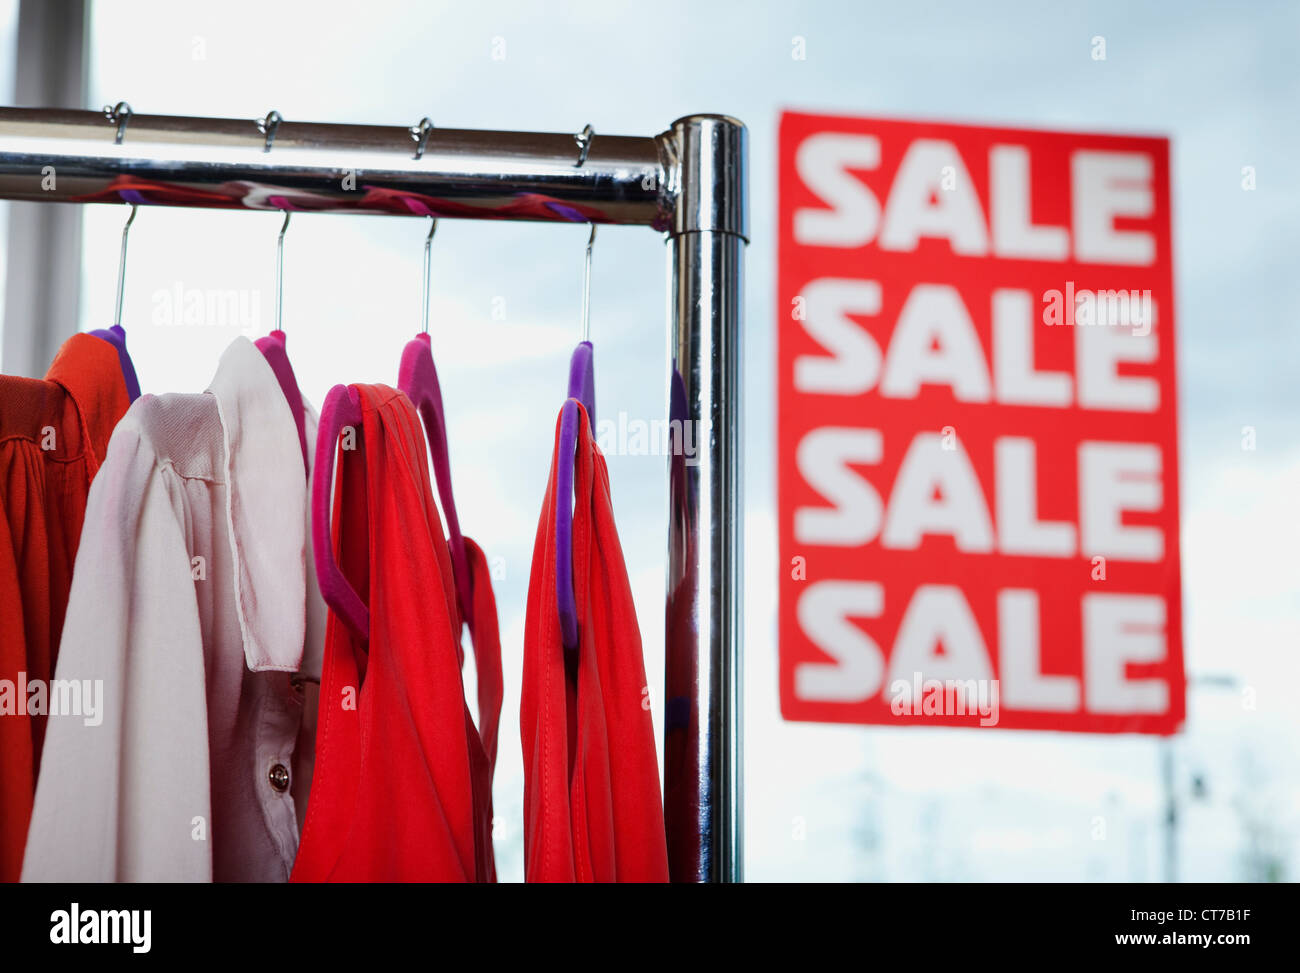 Blouses in sale on clothes rail - Stock Image